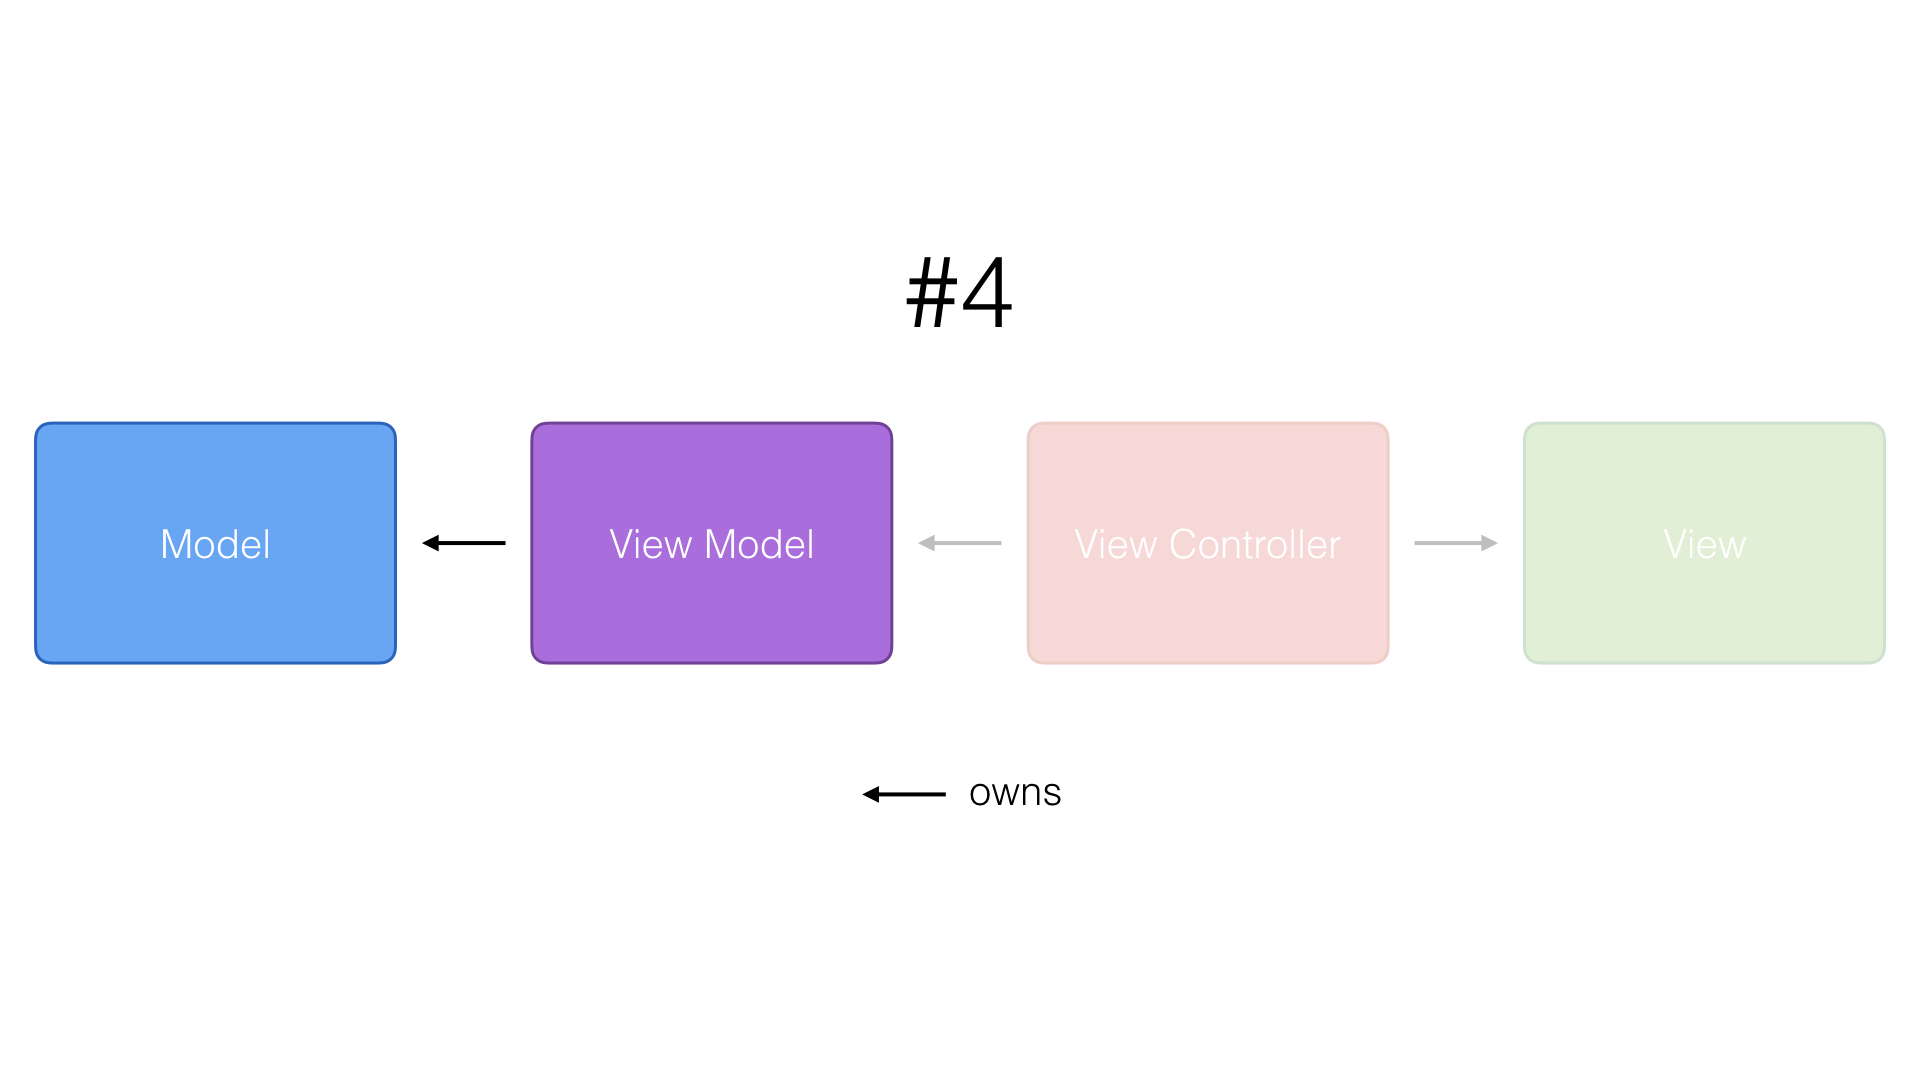 The view model owns the model.